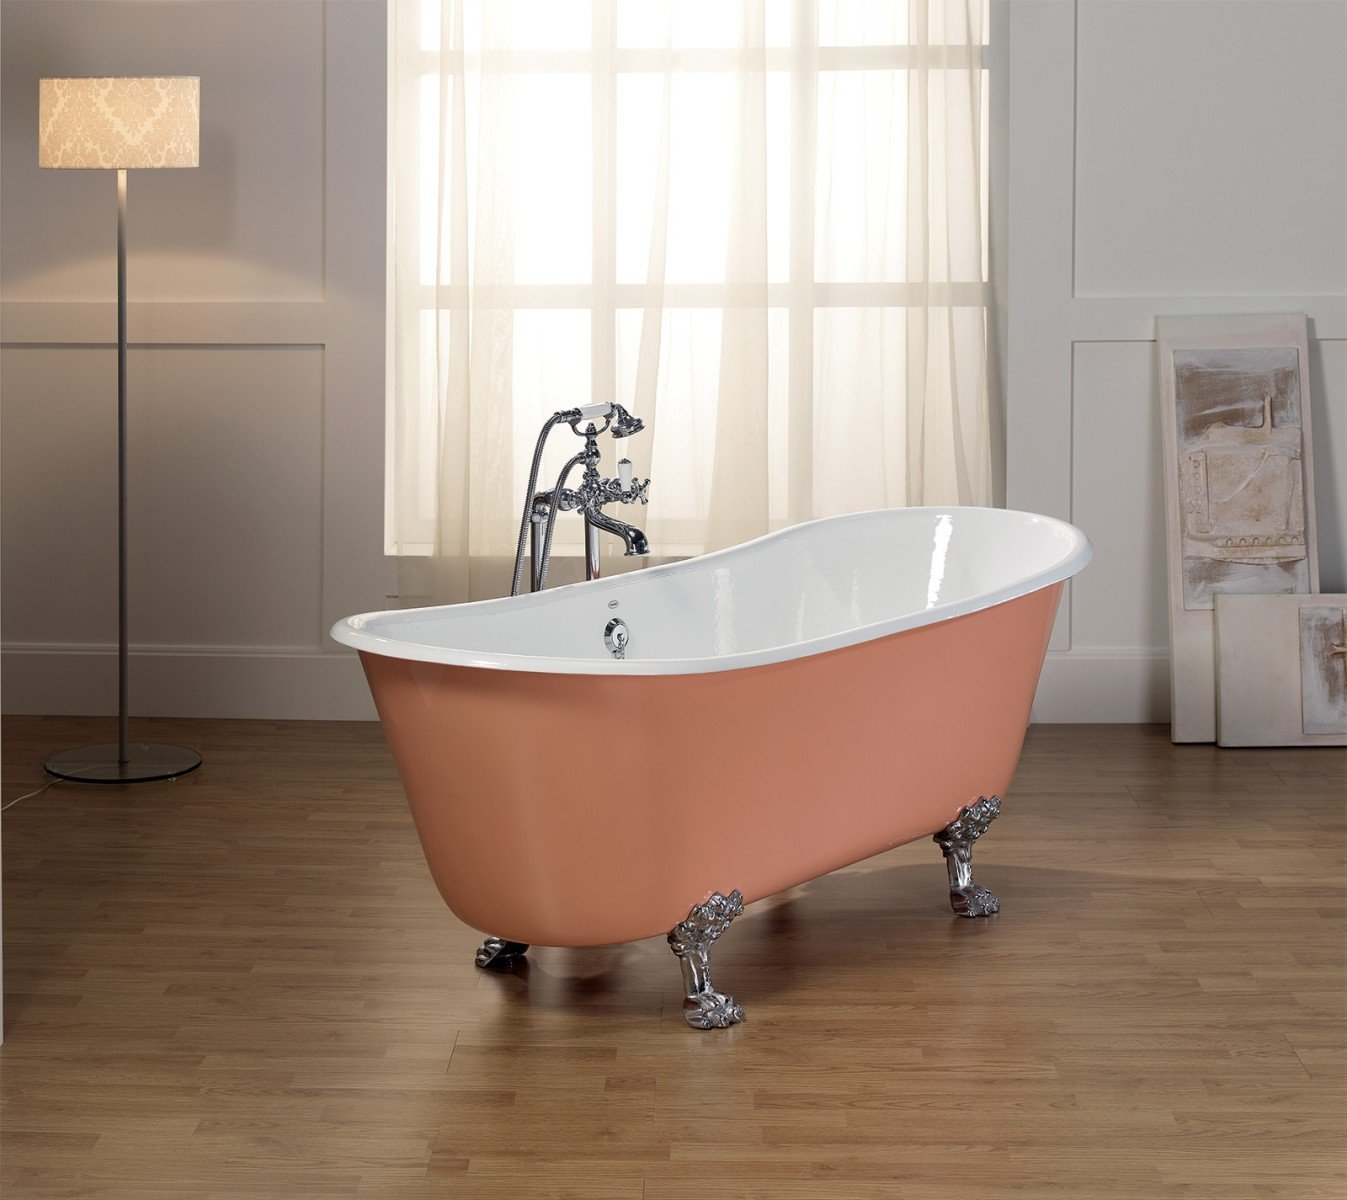 WINCHESTER Cast Iron Clawfoot Tub - Cheviot Products